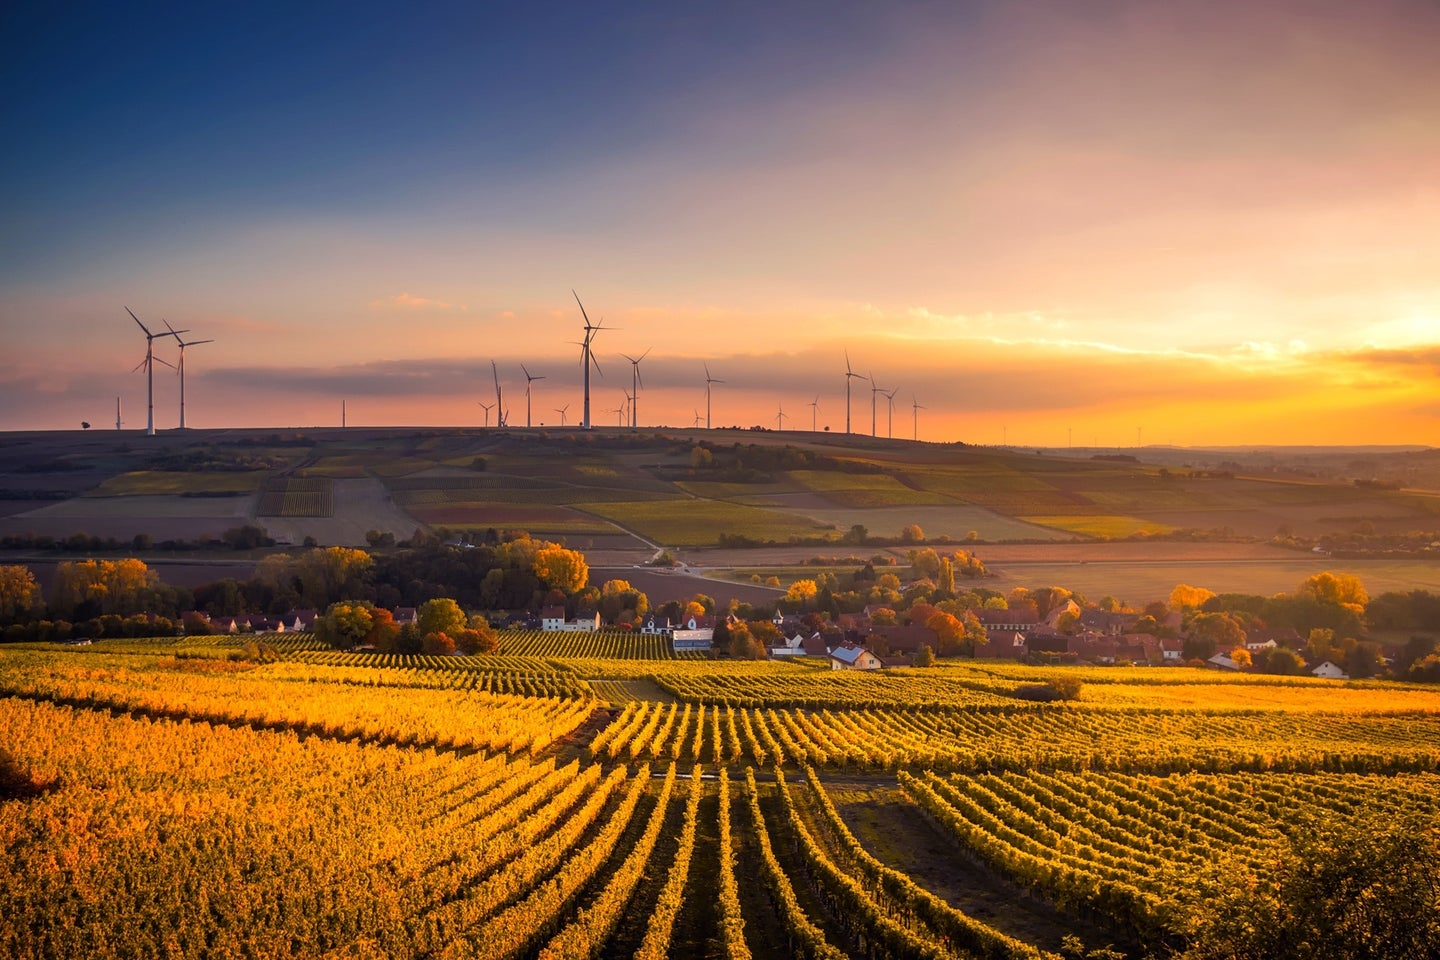 agricultural field with wind farm in background at sunset